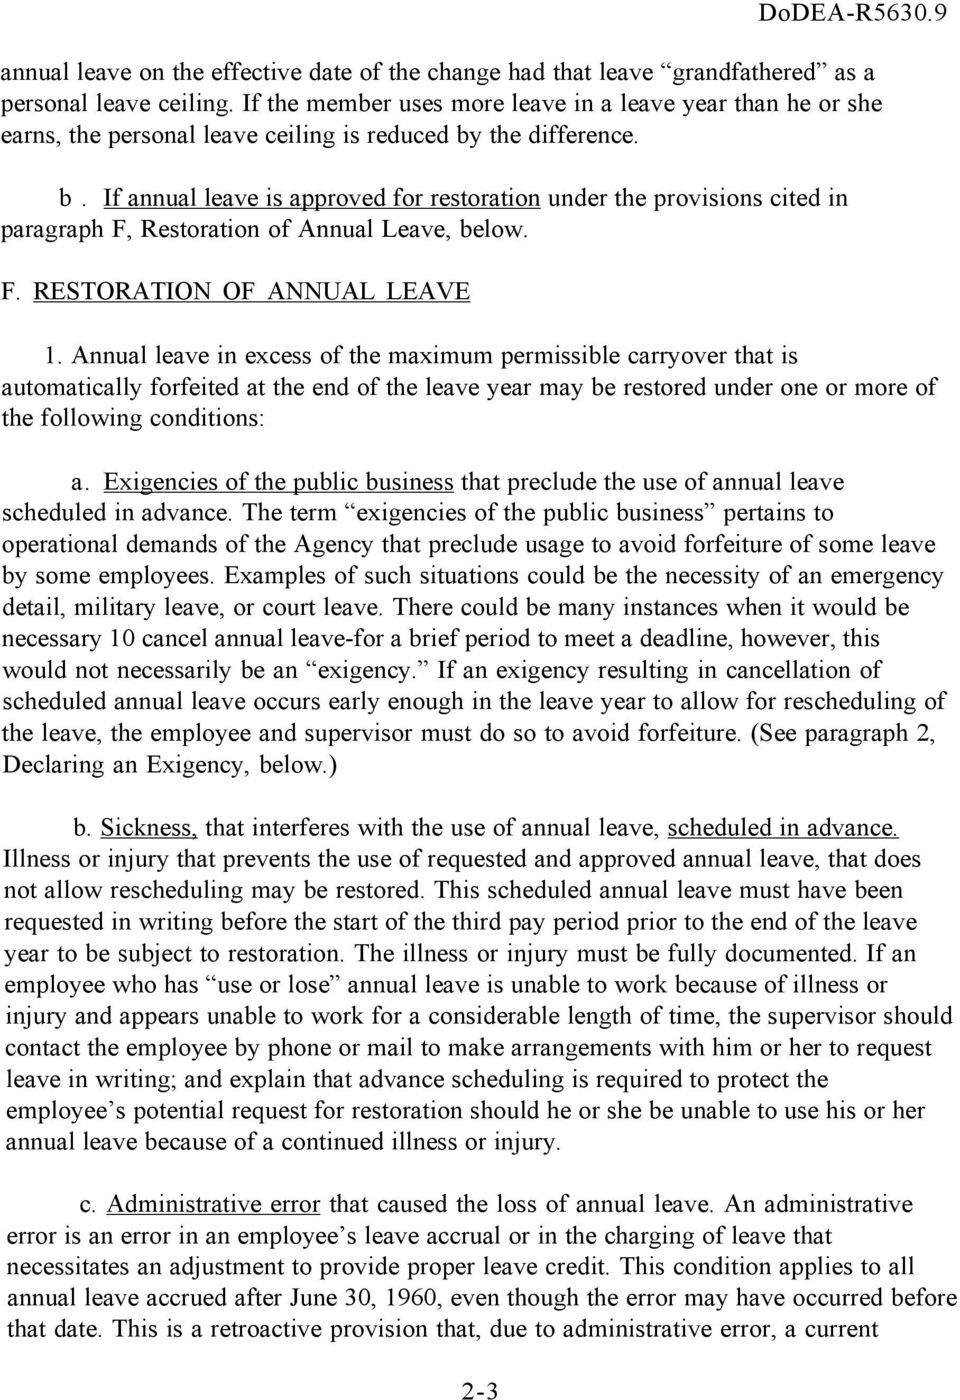 If annual leave is approved for restoration under the provisions cited